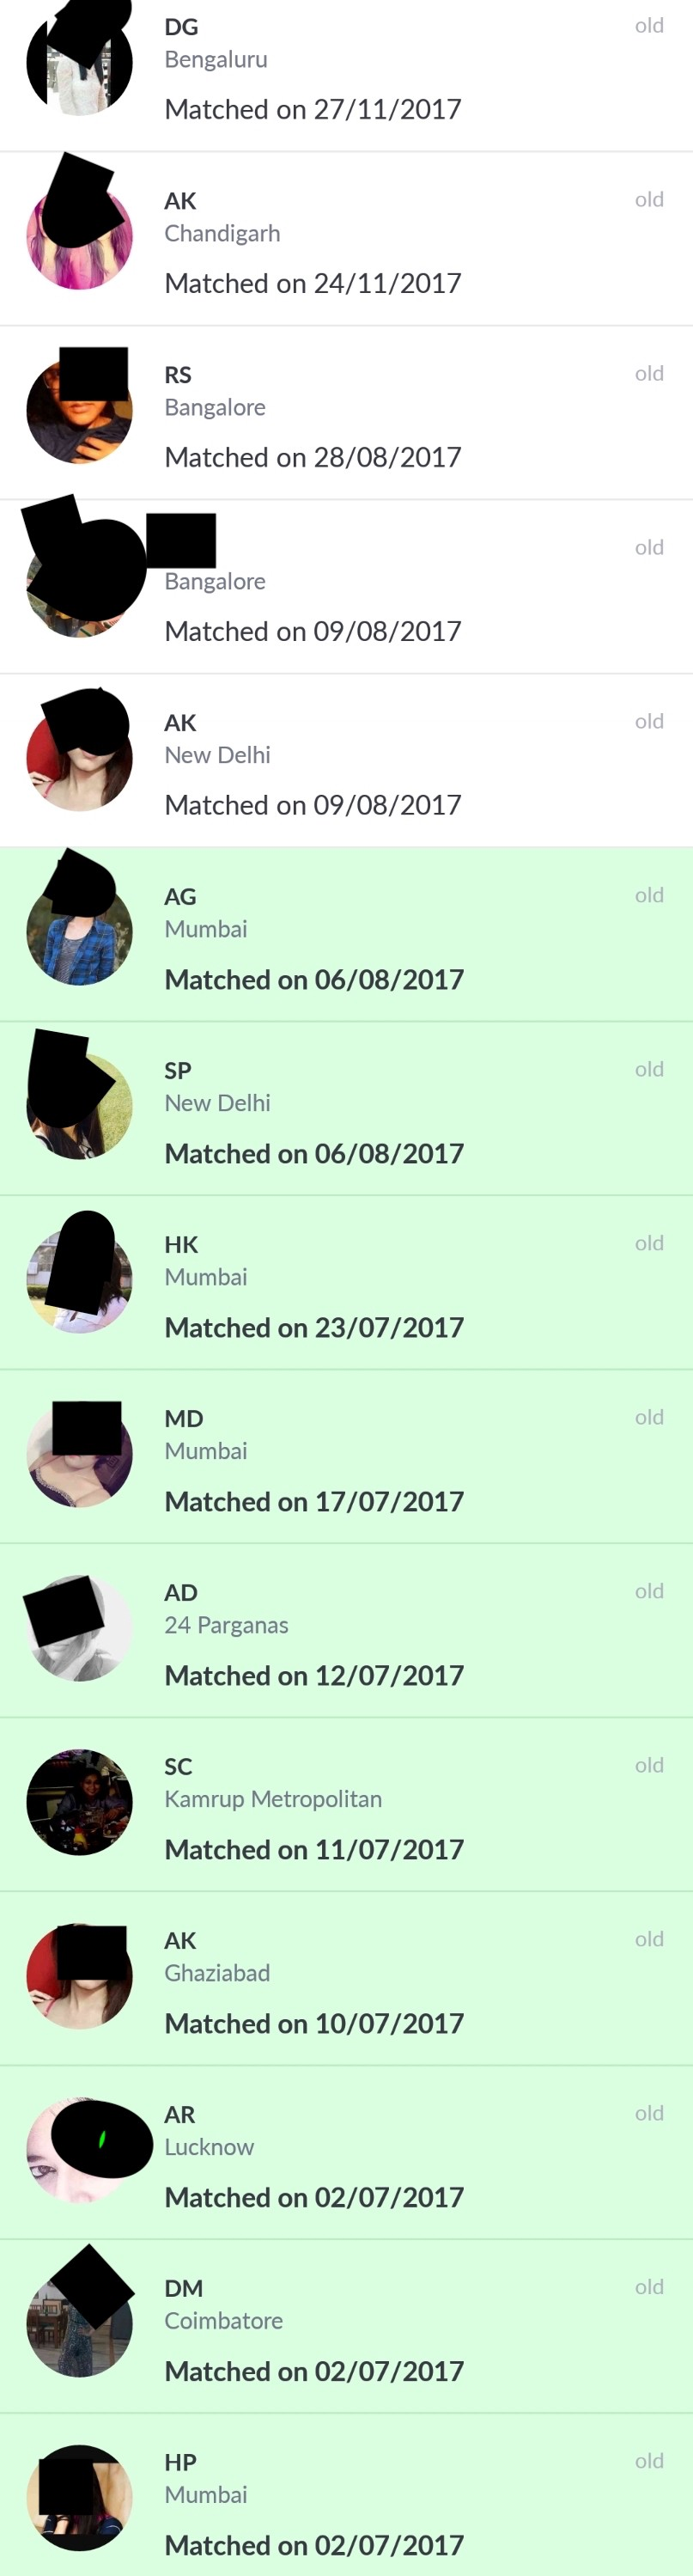 The dating app scam that's called Woo - Adithya Venkatesan